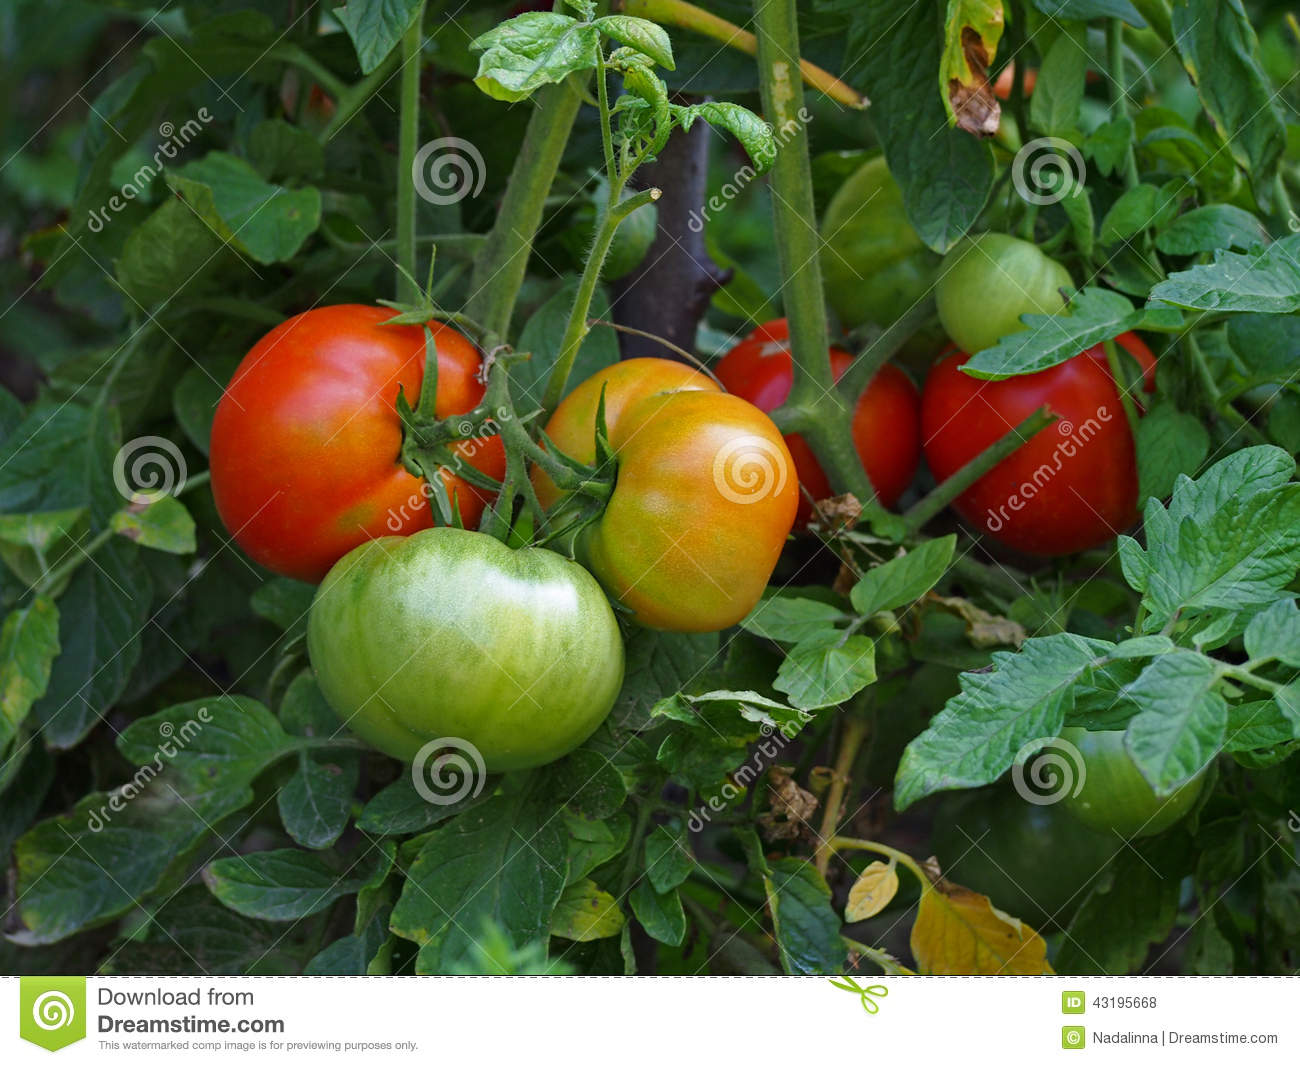 how to grow tomatoes in garden you tube